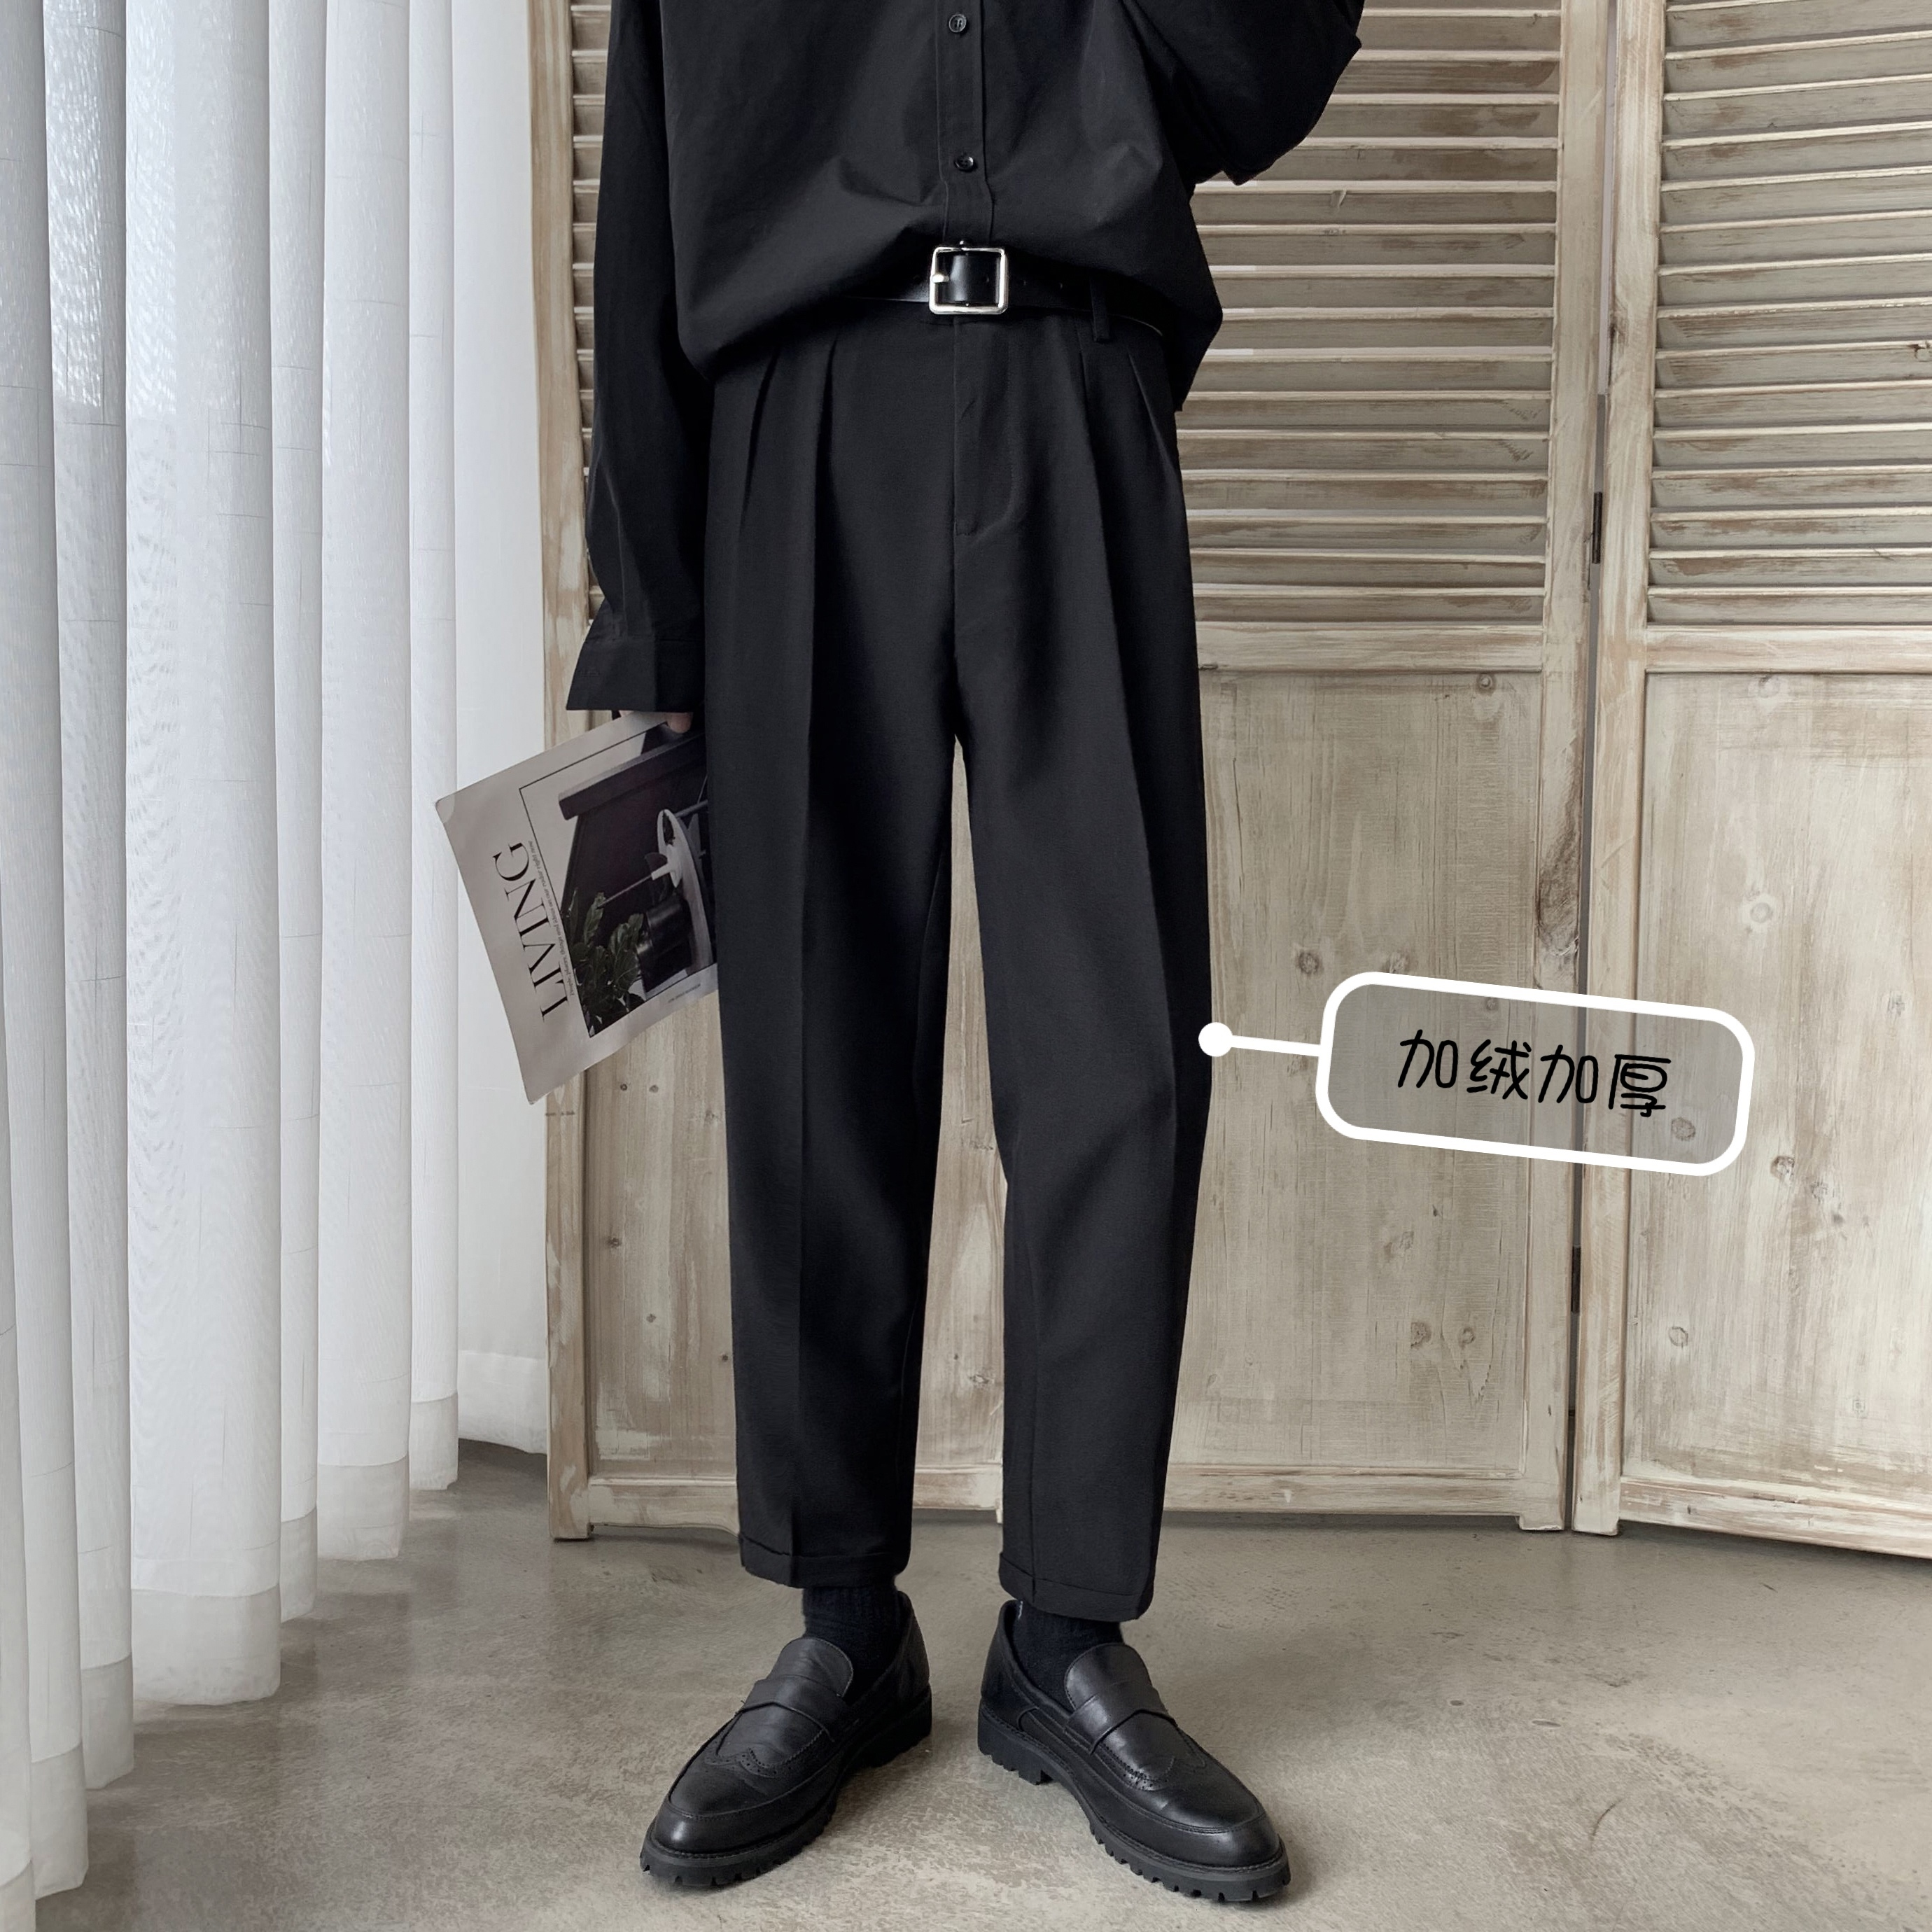 2019Autumn And Winter New Men's Fall Straight Leg Pants Fashion Casual Solid Color Plus Velvet Thick Small Trousers Black / Gray